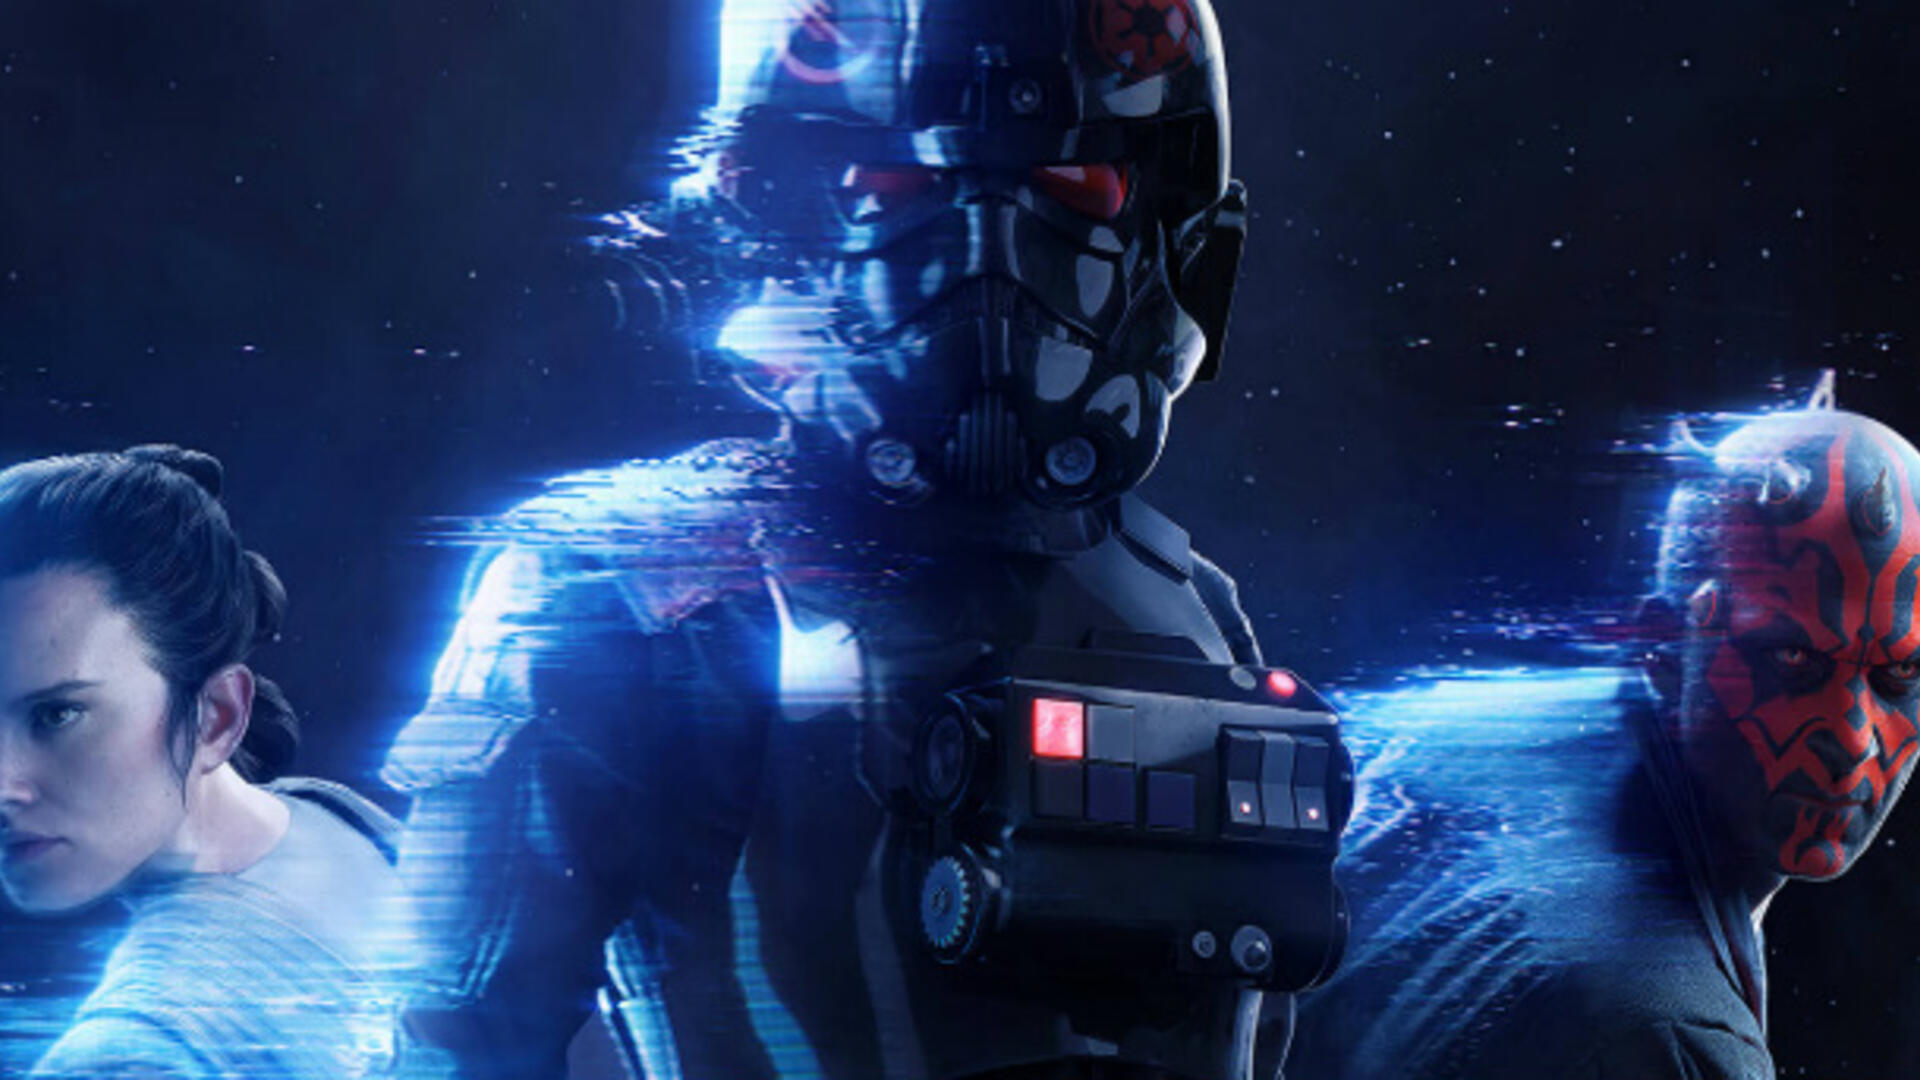 Report: EA to Kill Star Wars Battlefront 2's Monetized Loot Box Progression [Update: EA Confirms Microtransactions Temporarily Removed]